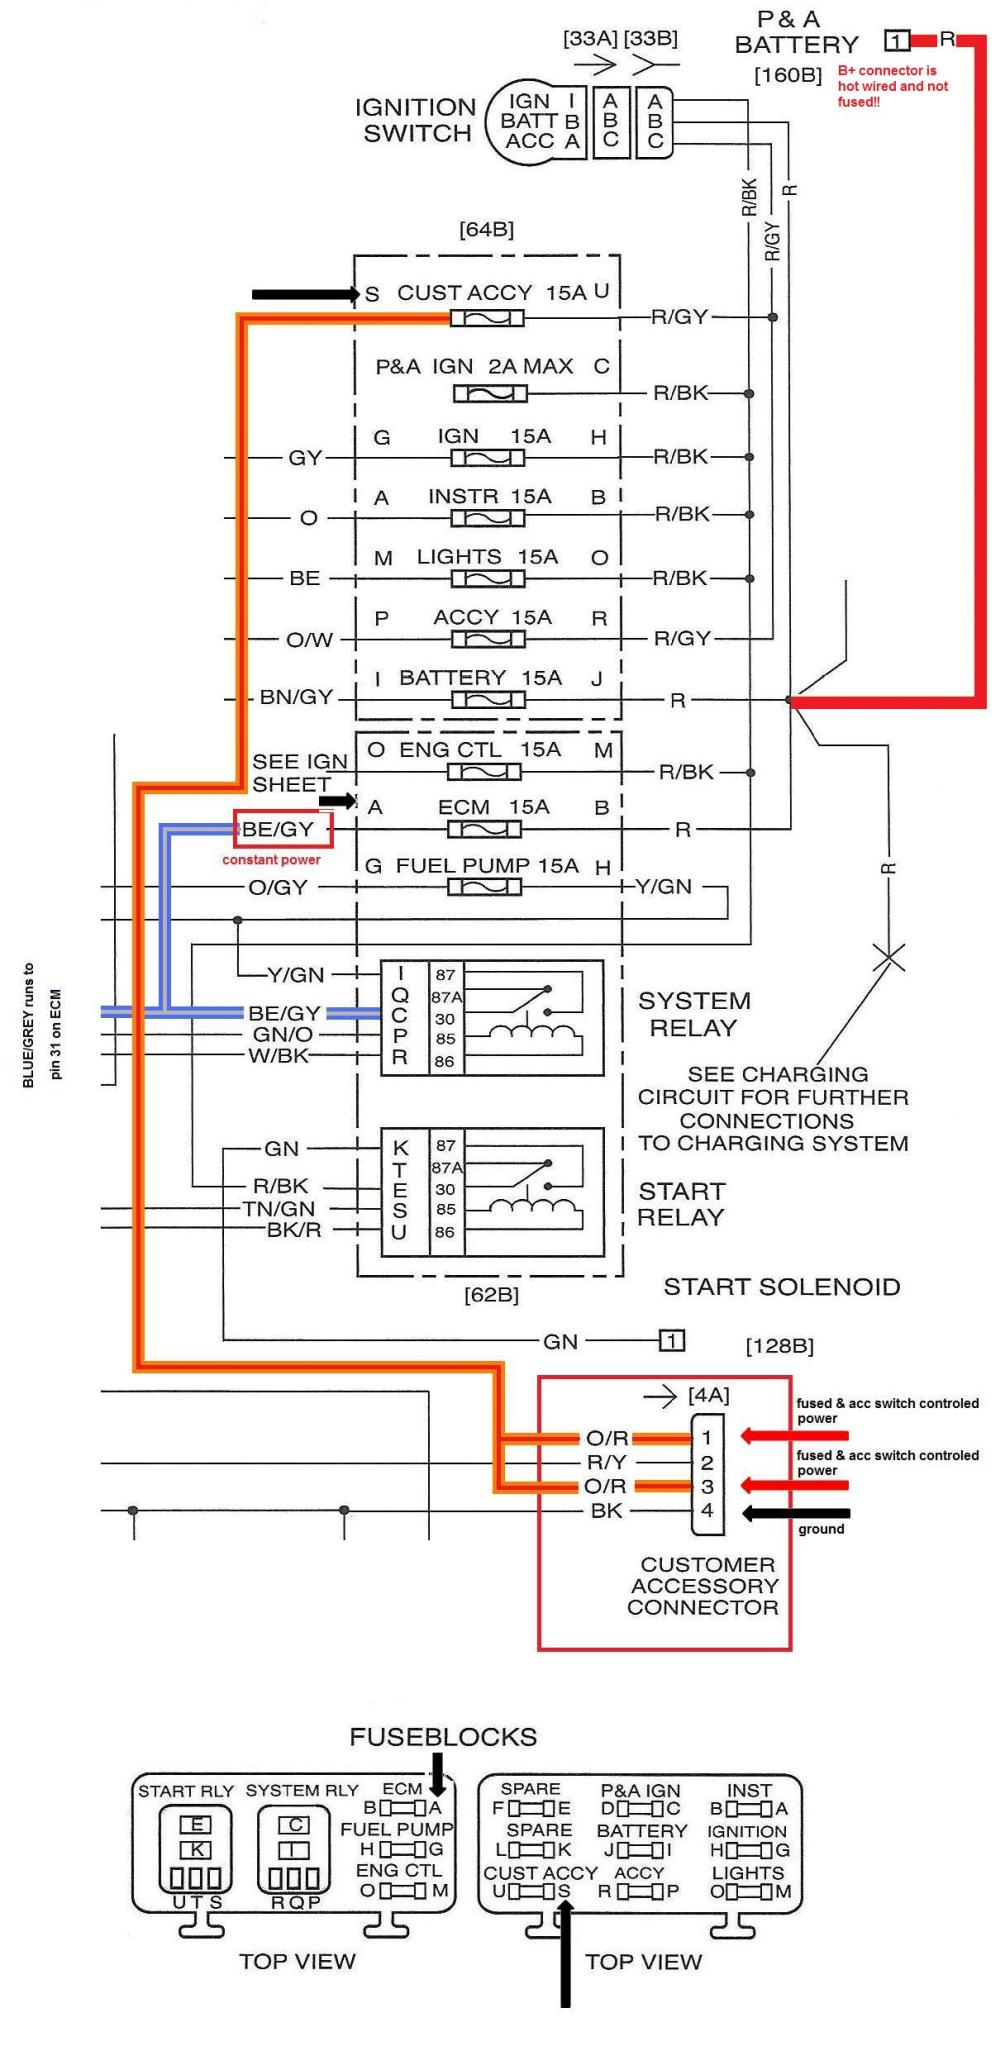 2001 flhtc wiring diagram 2001 firebird wiring diagram